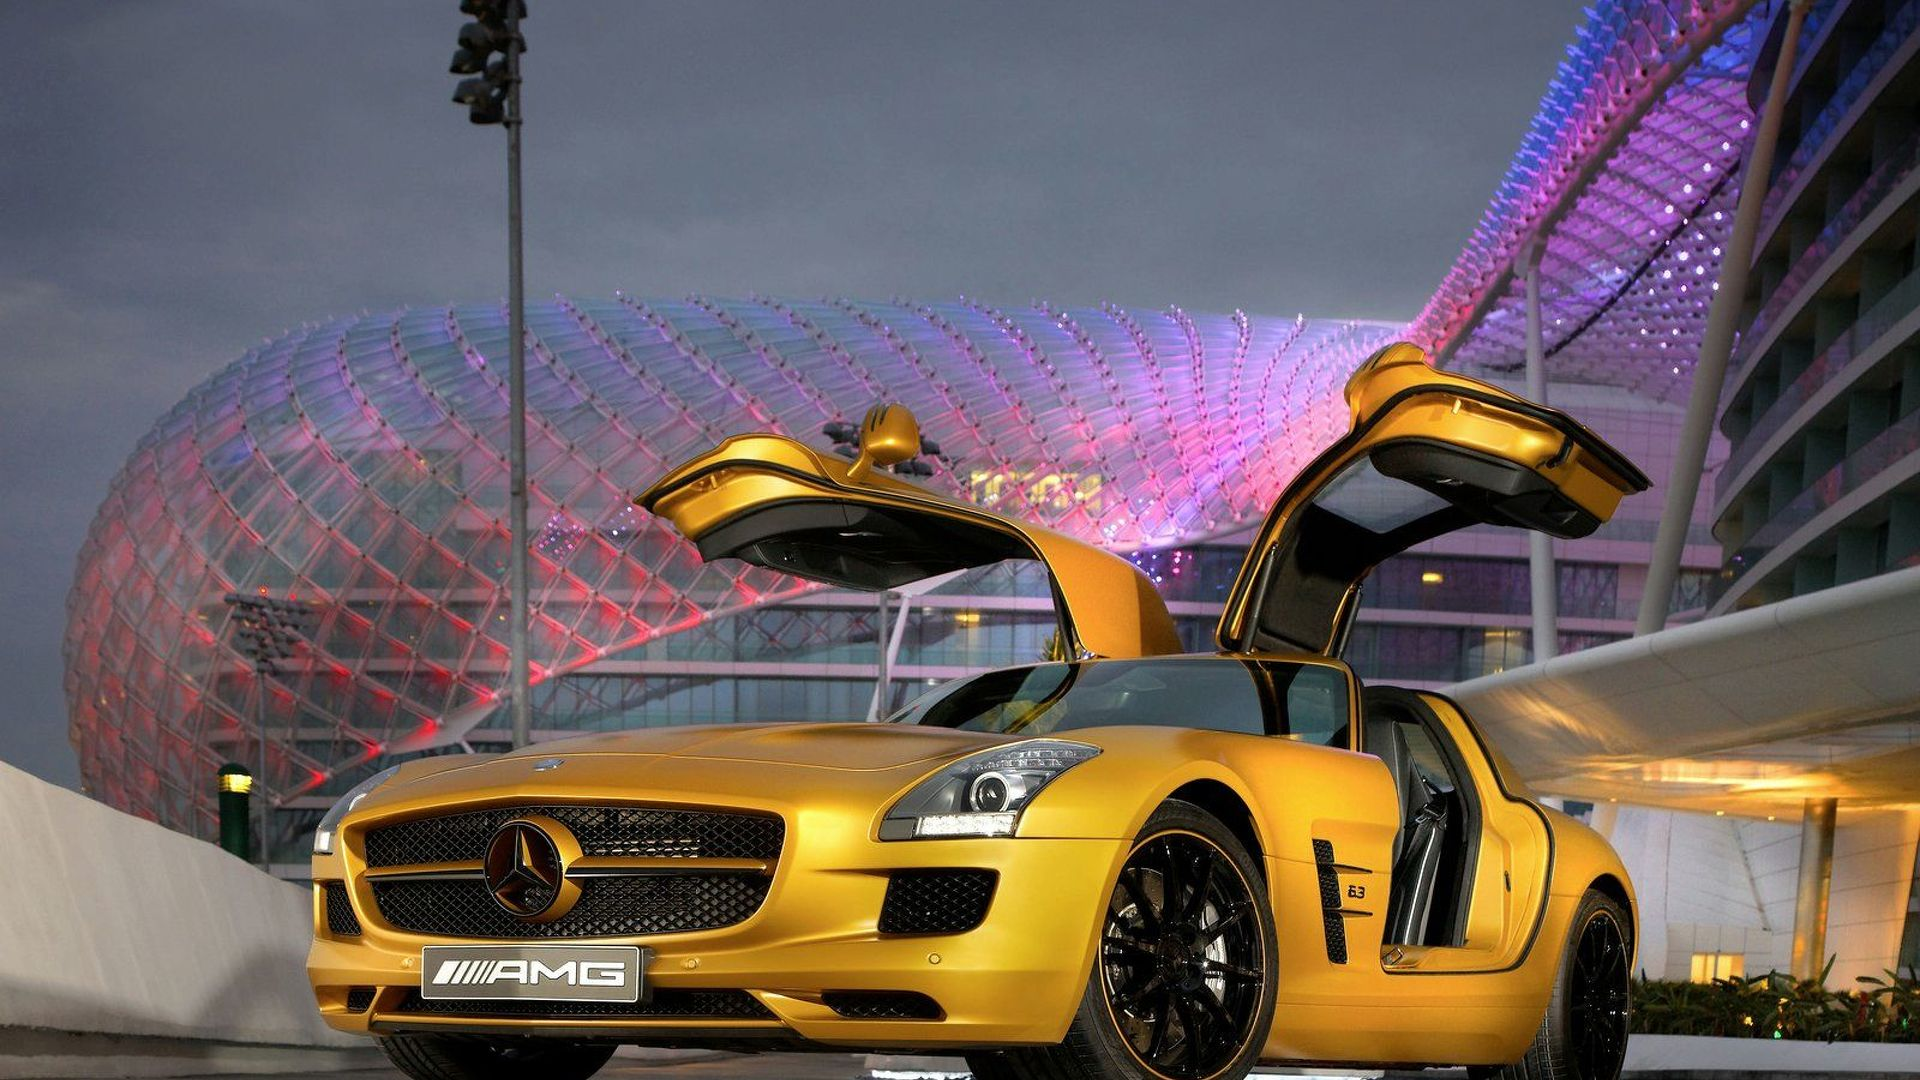 Mercedes Sls Amg Desert Gold And G 55 Amg Edition 79 To Debut At